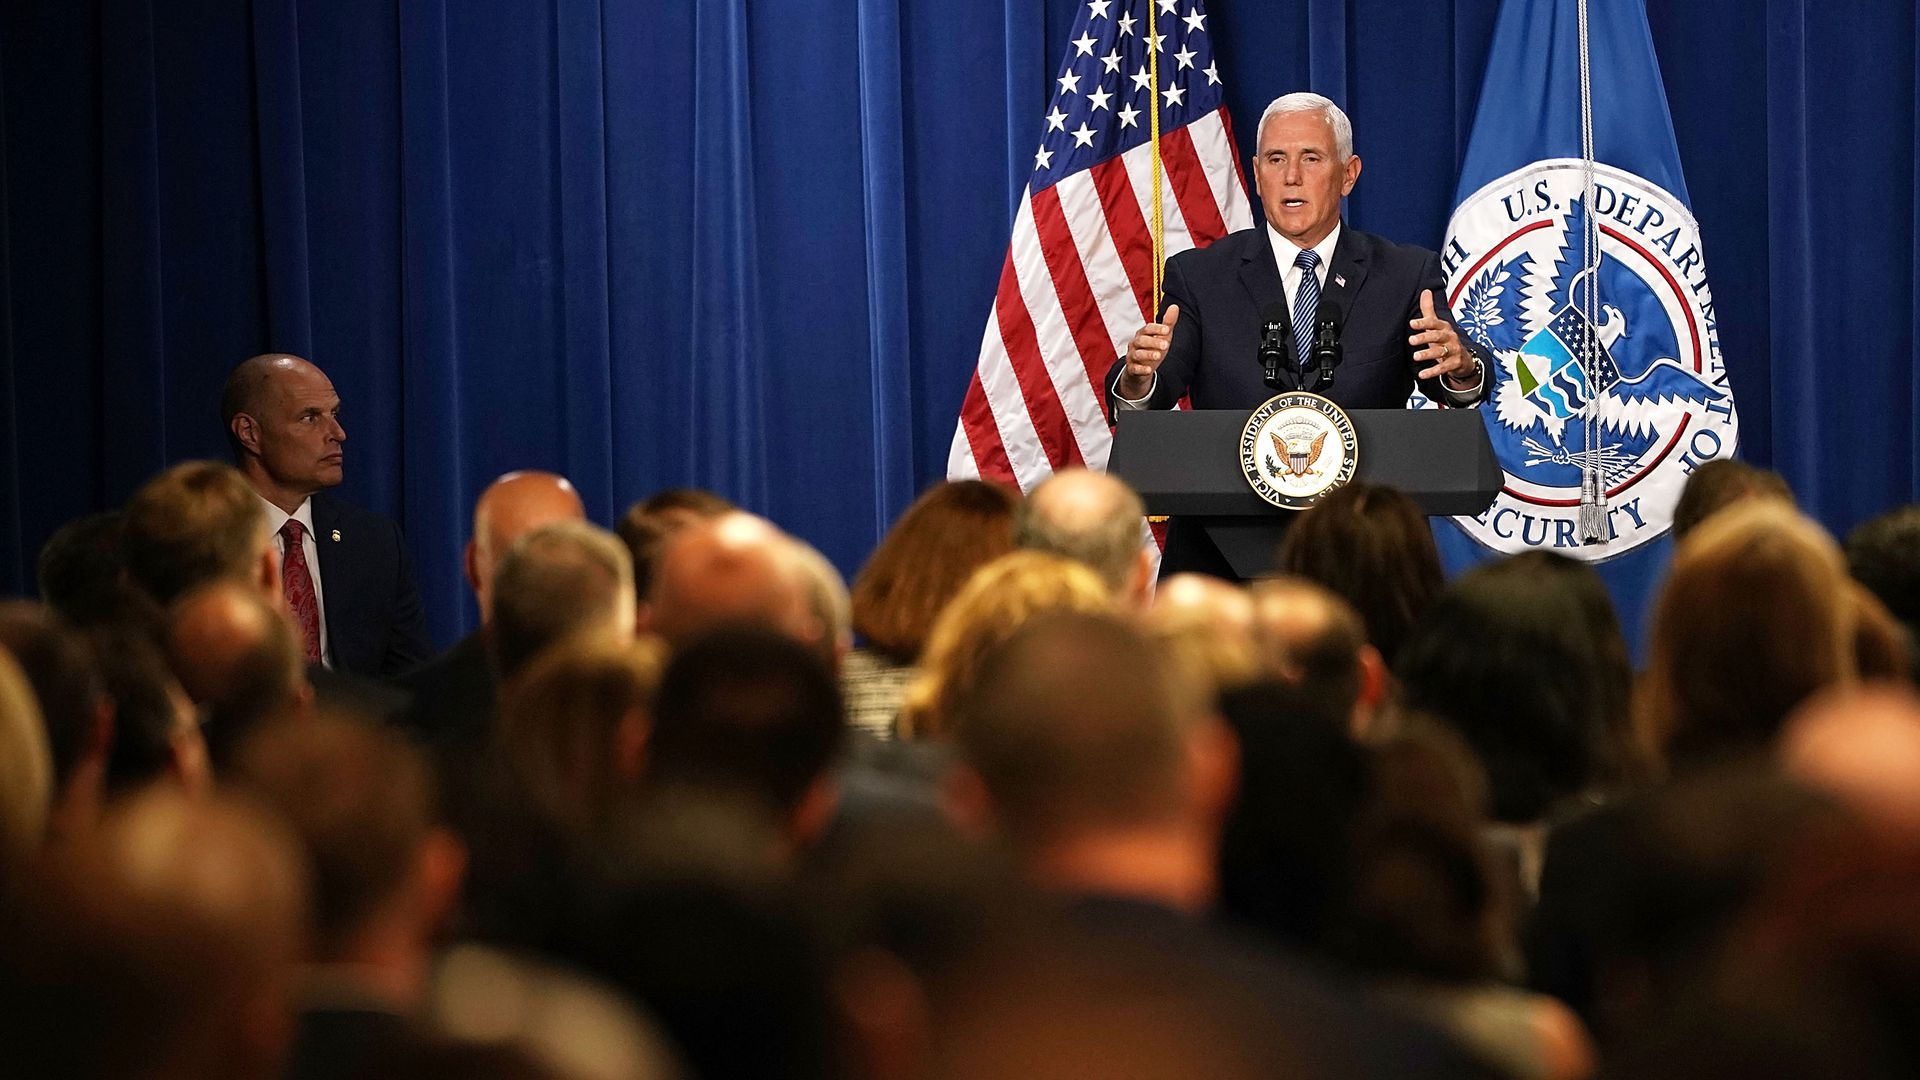 Vice President Pence speaking to a crowd at D.C.'s ICE headquarters.